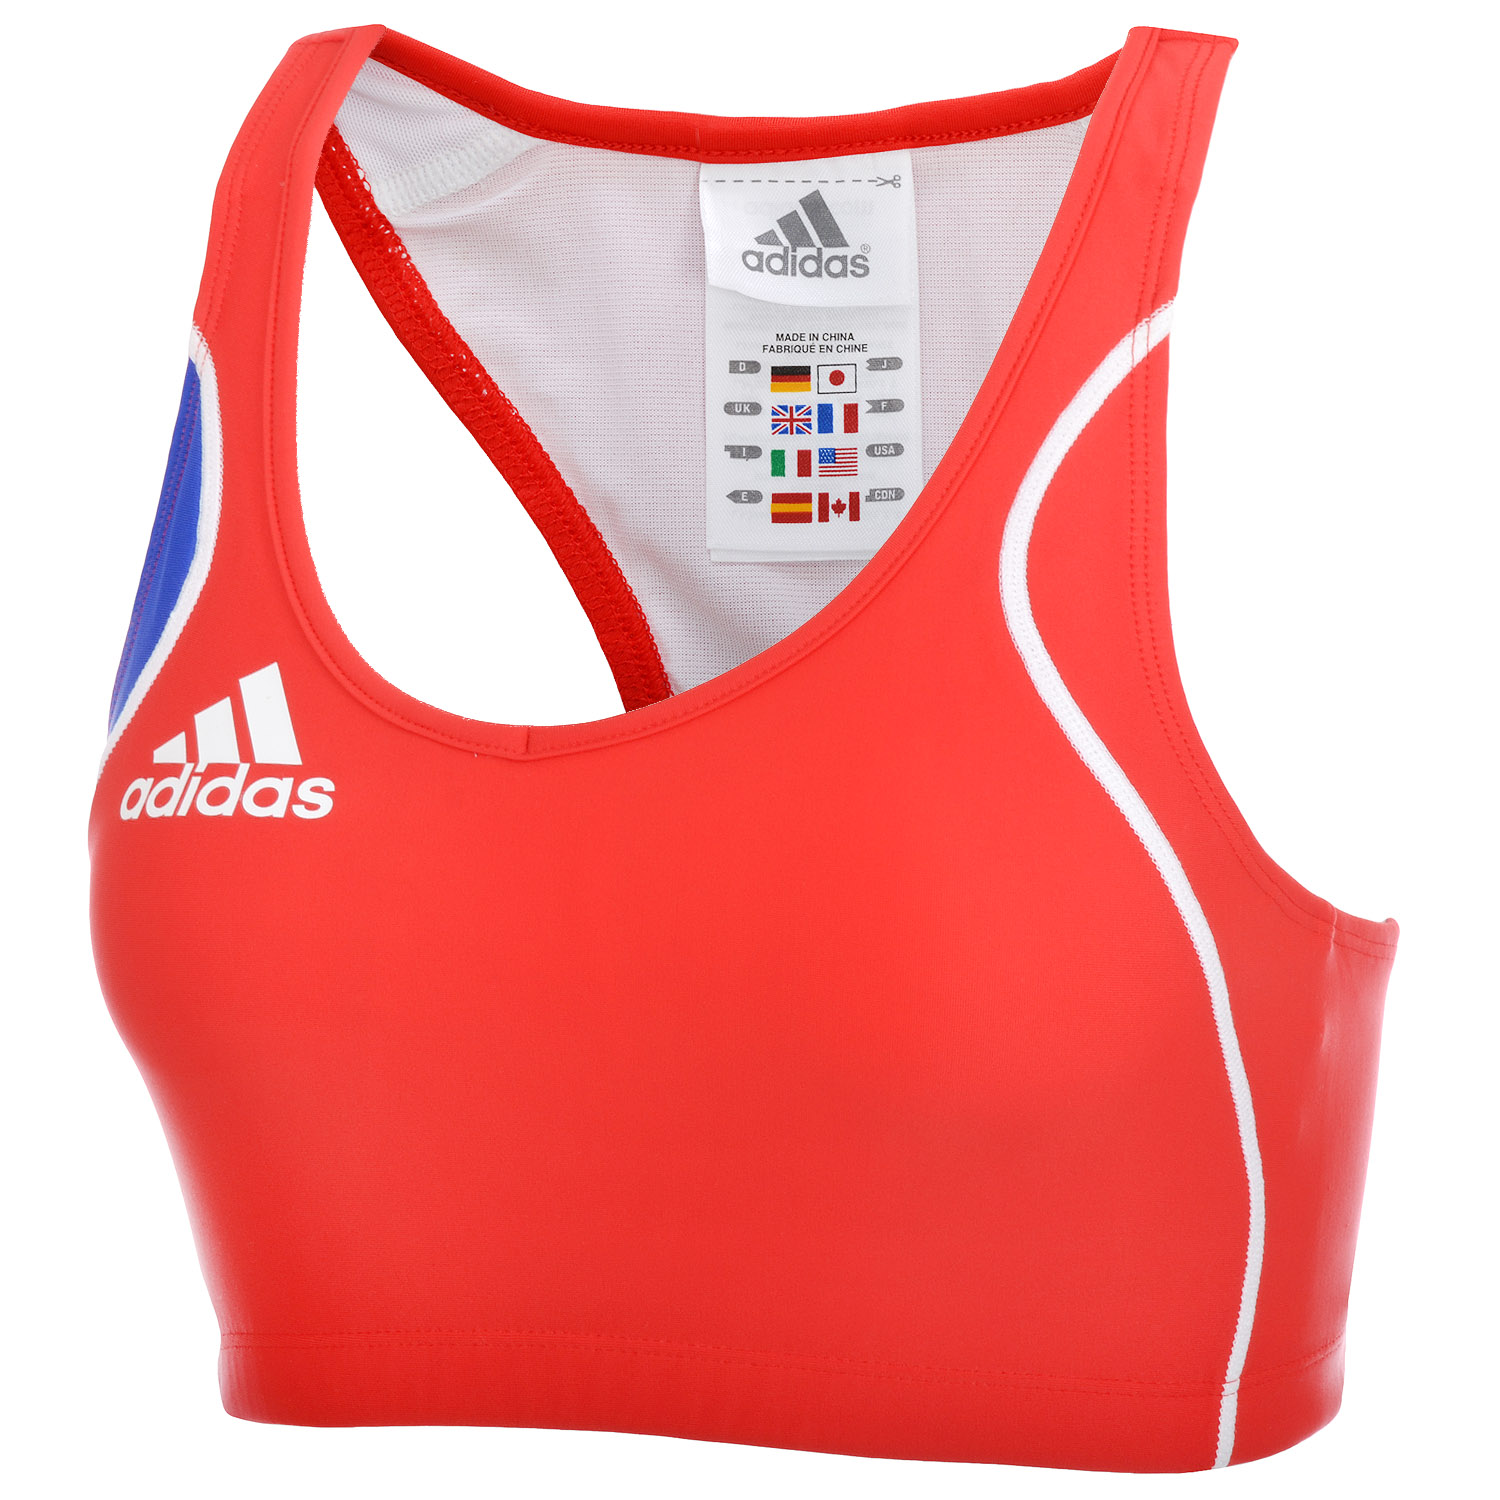 adidas performance womens ladies running gym athletics. Black Bedroom Furniture Sets. Home Design Ideas